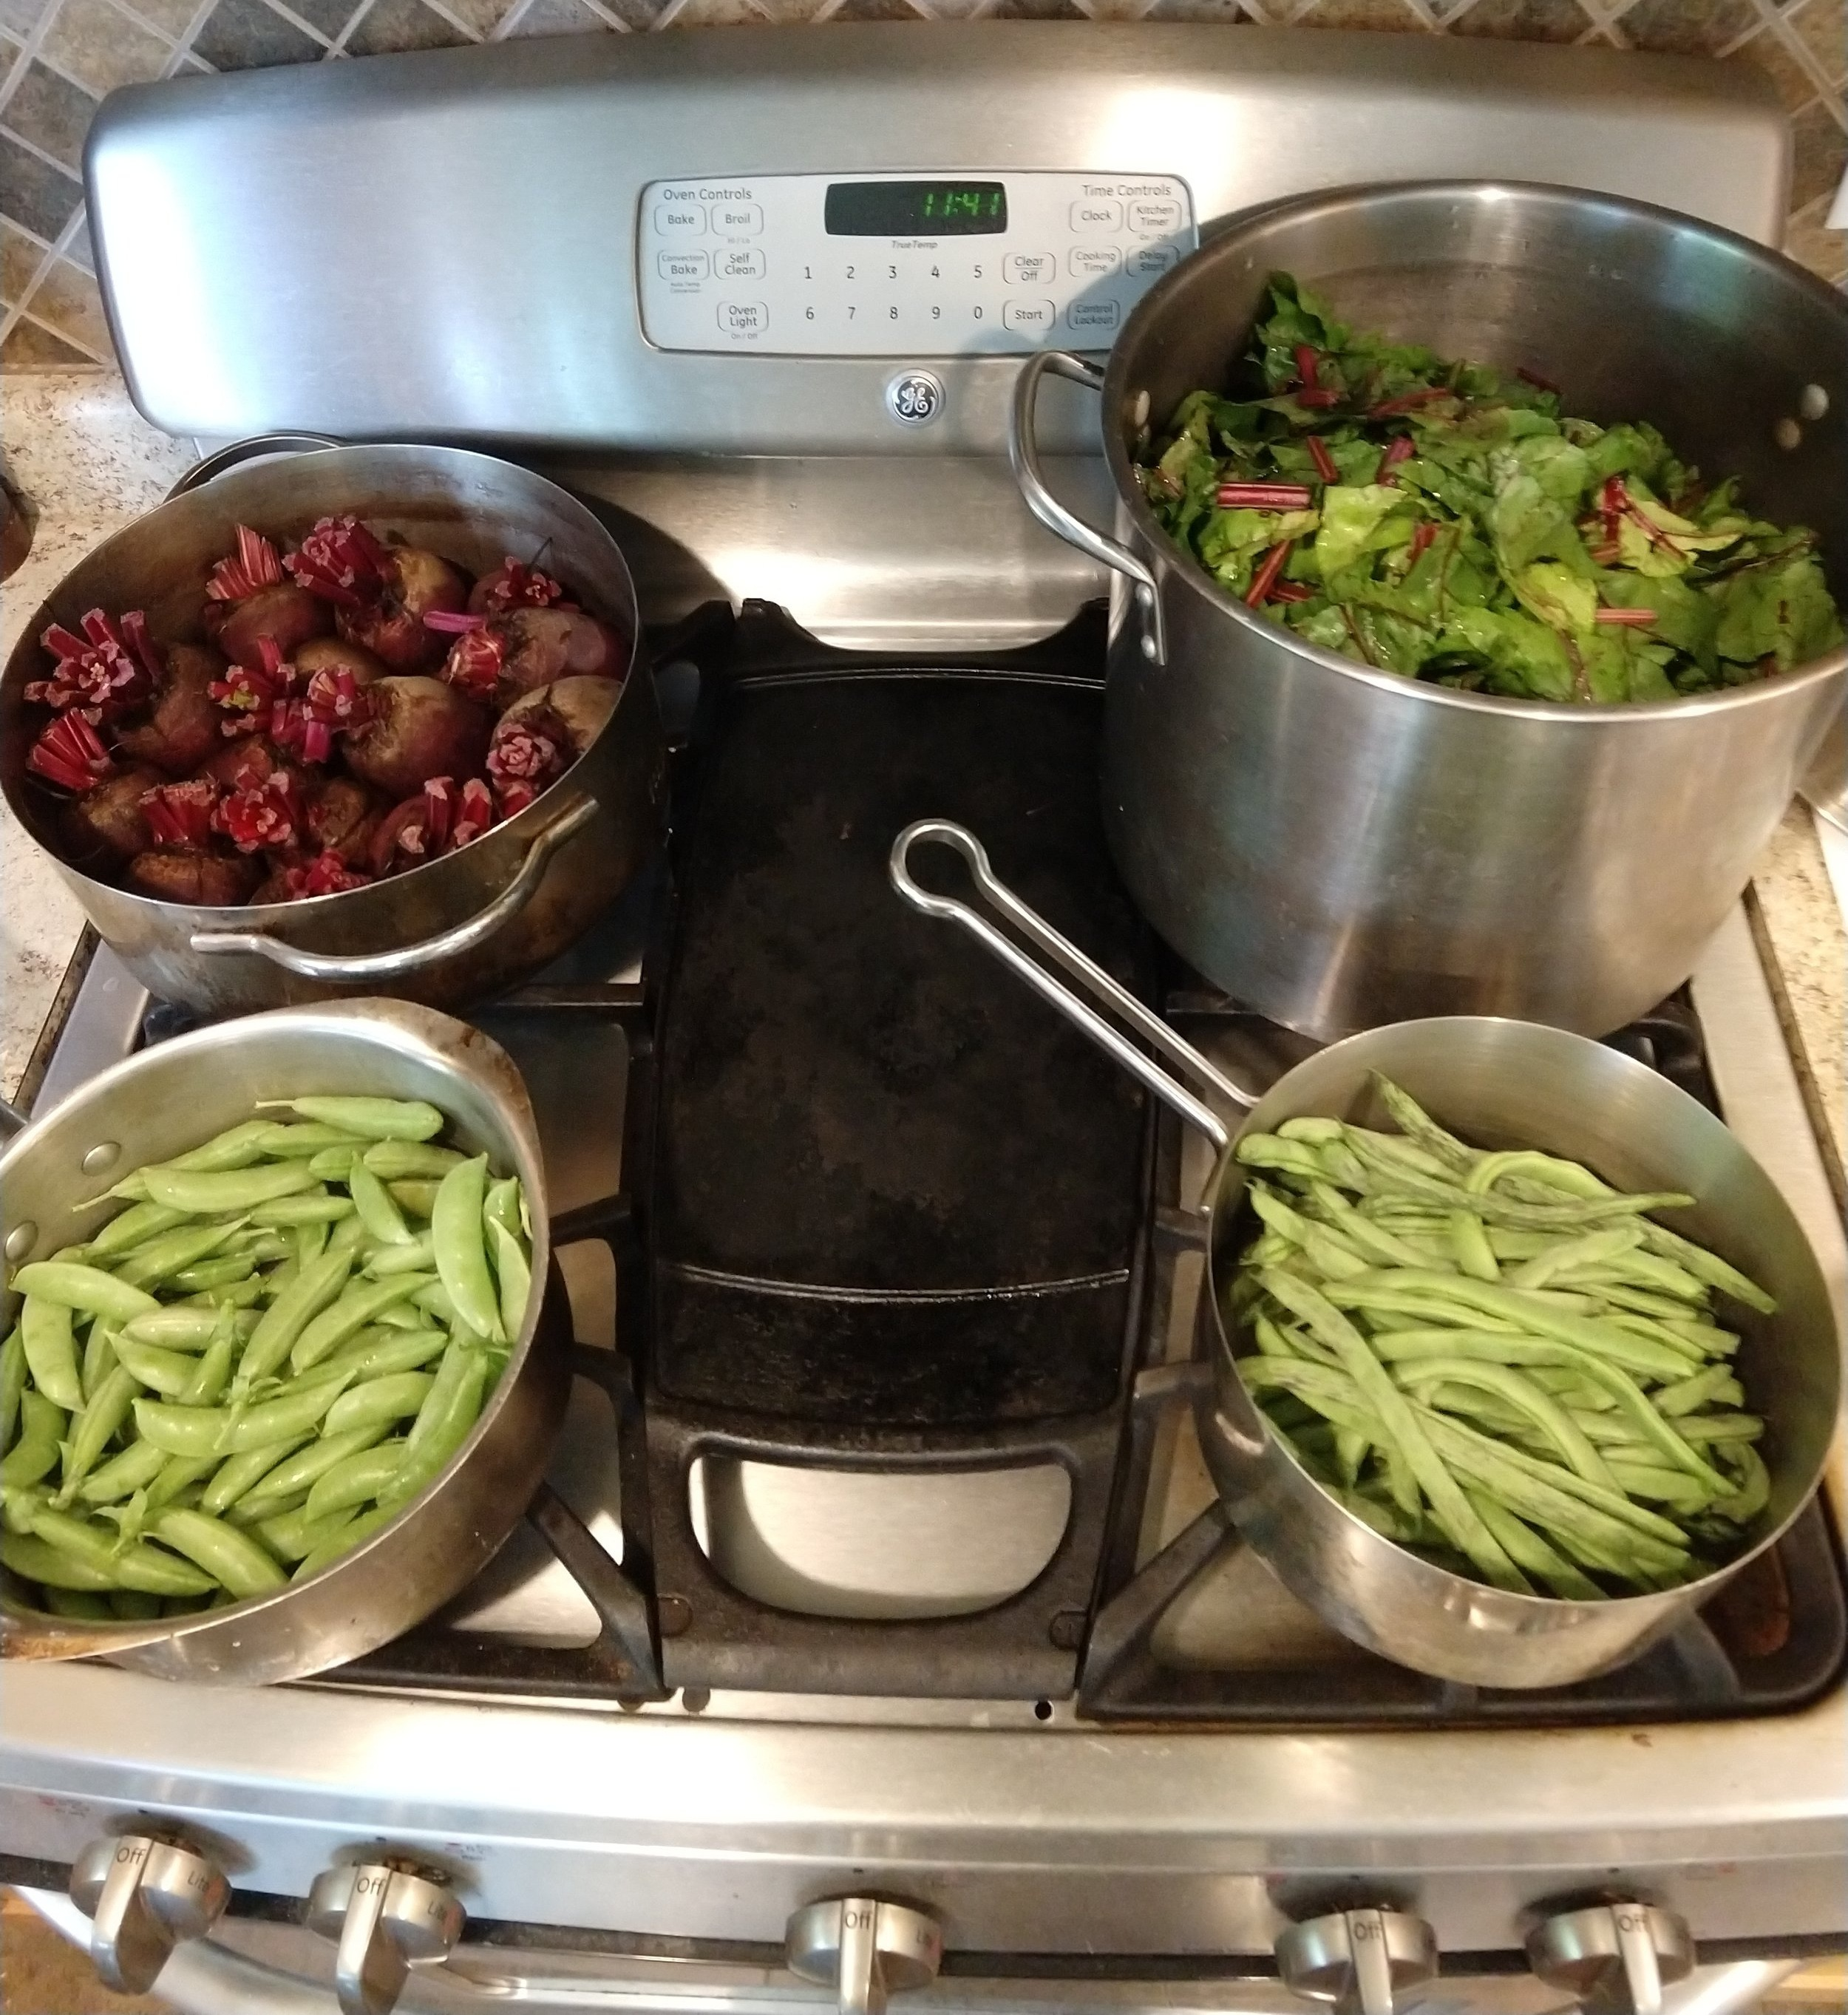 We love our gas stove, but this picking is too much to do all at once. So we'll save the beets for another day.